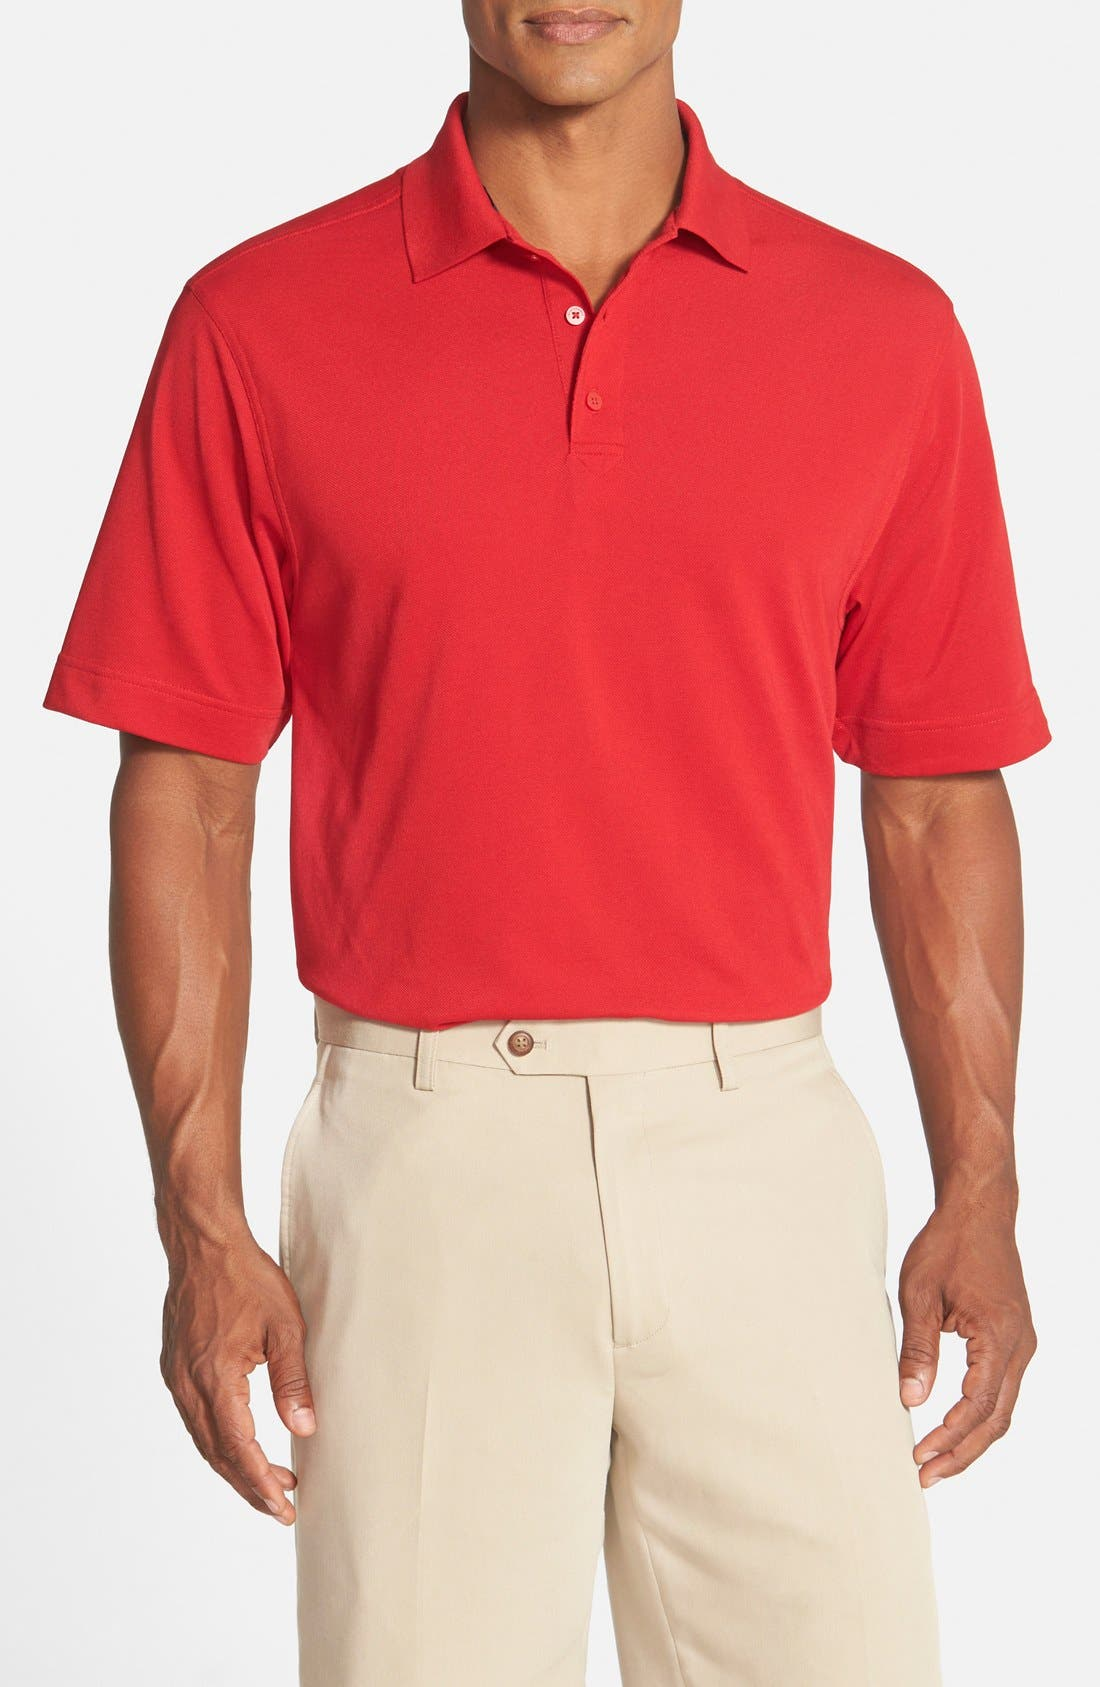 Mens Red Polo Shirts Nordstrom